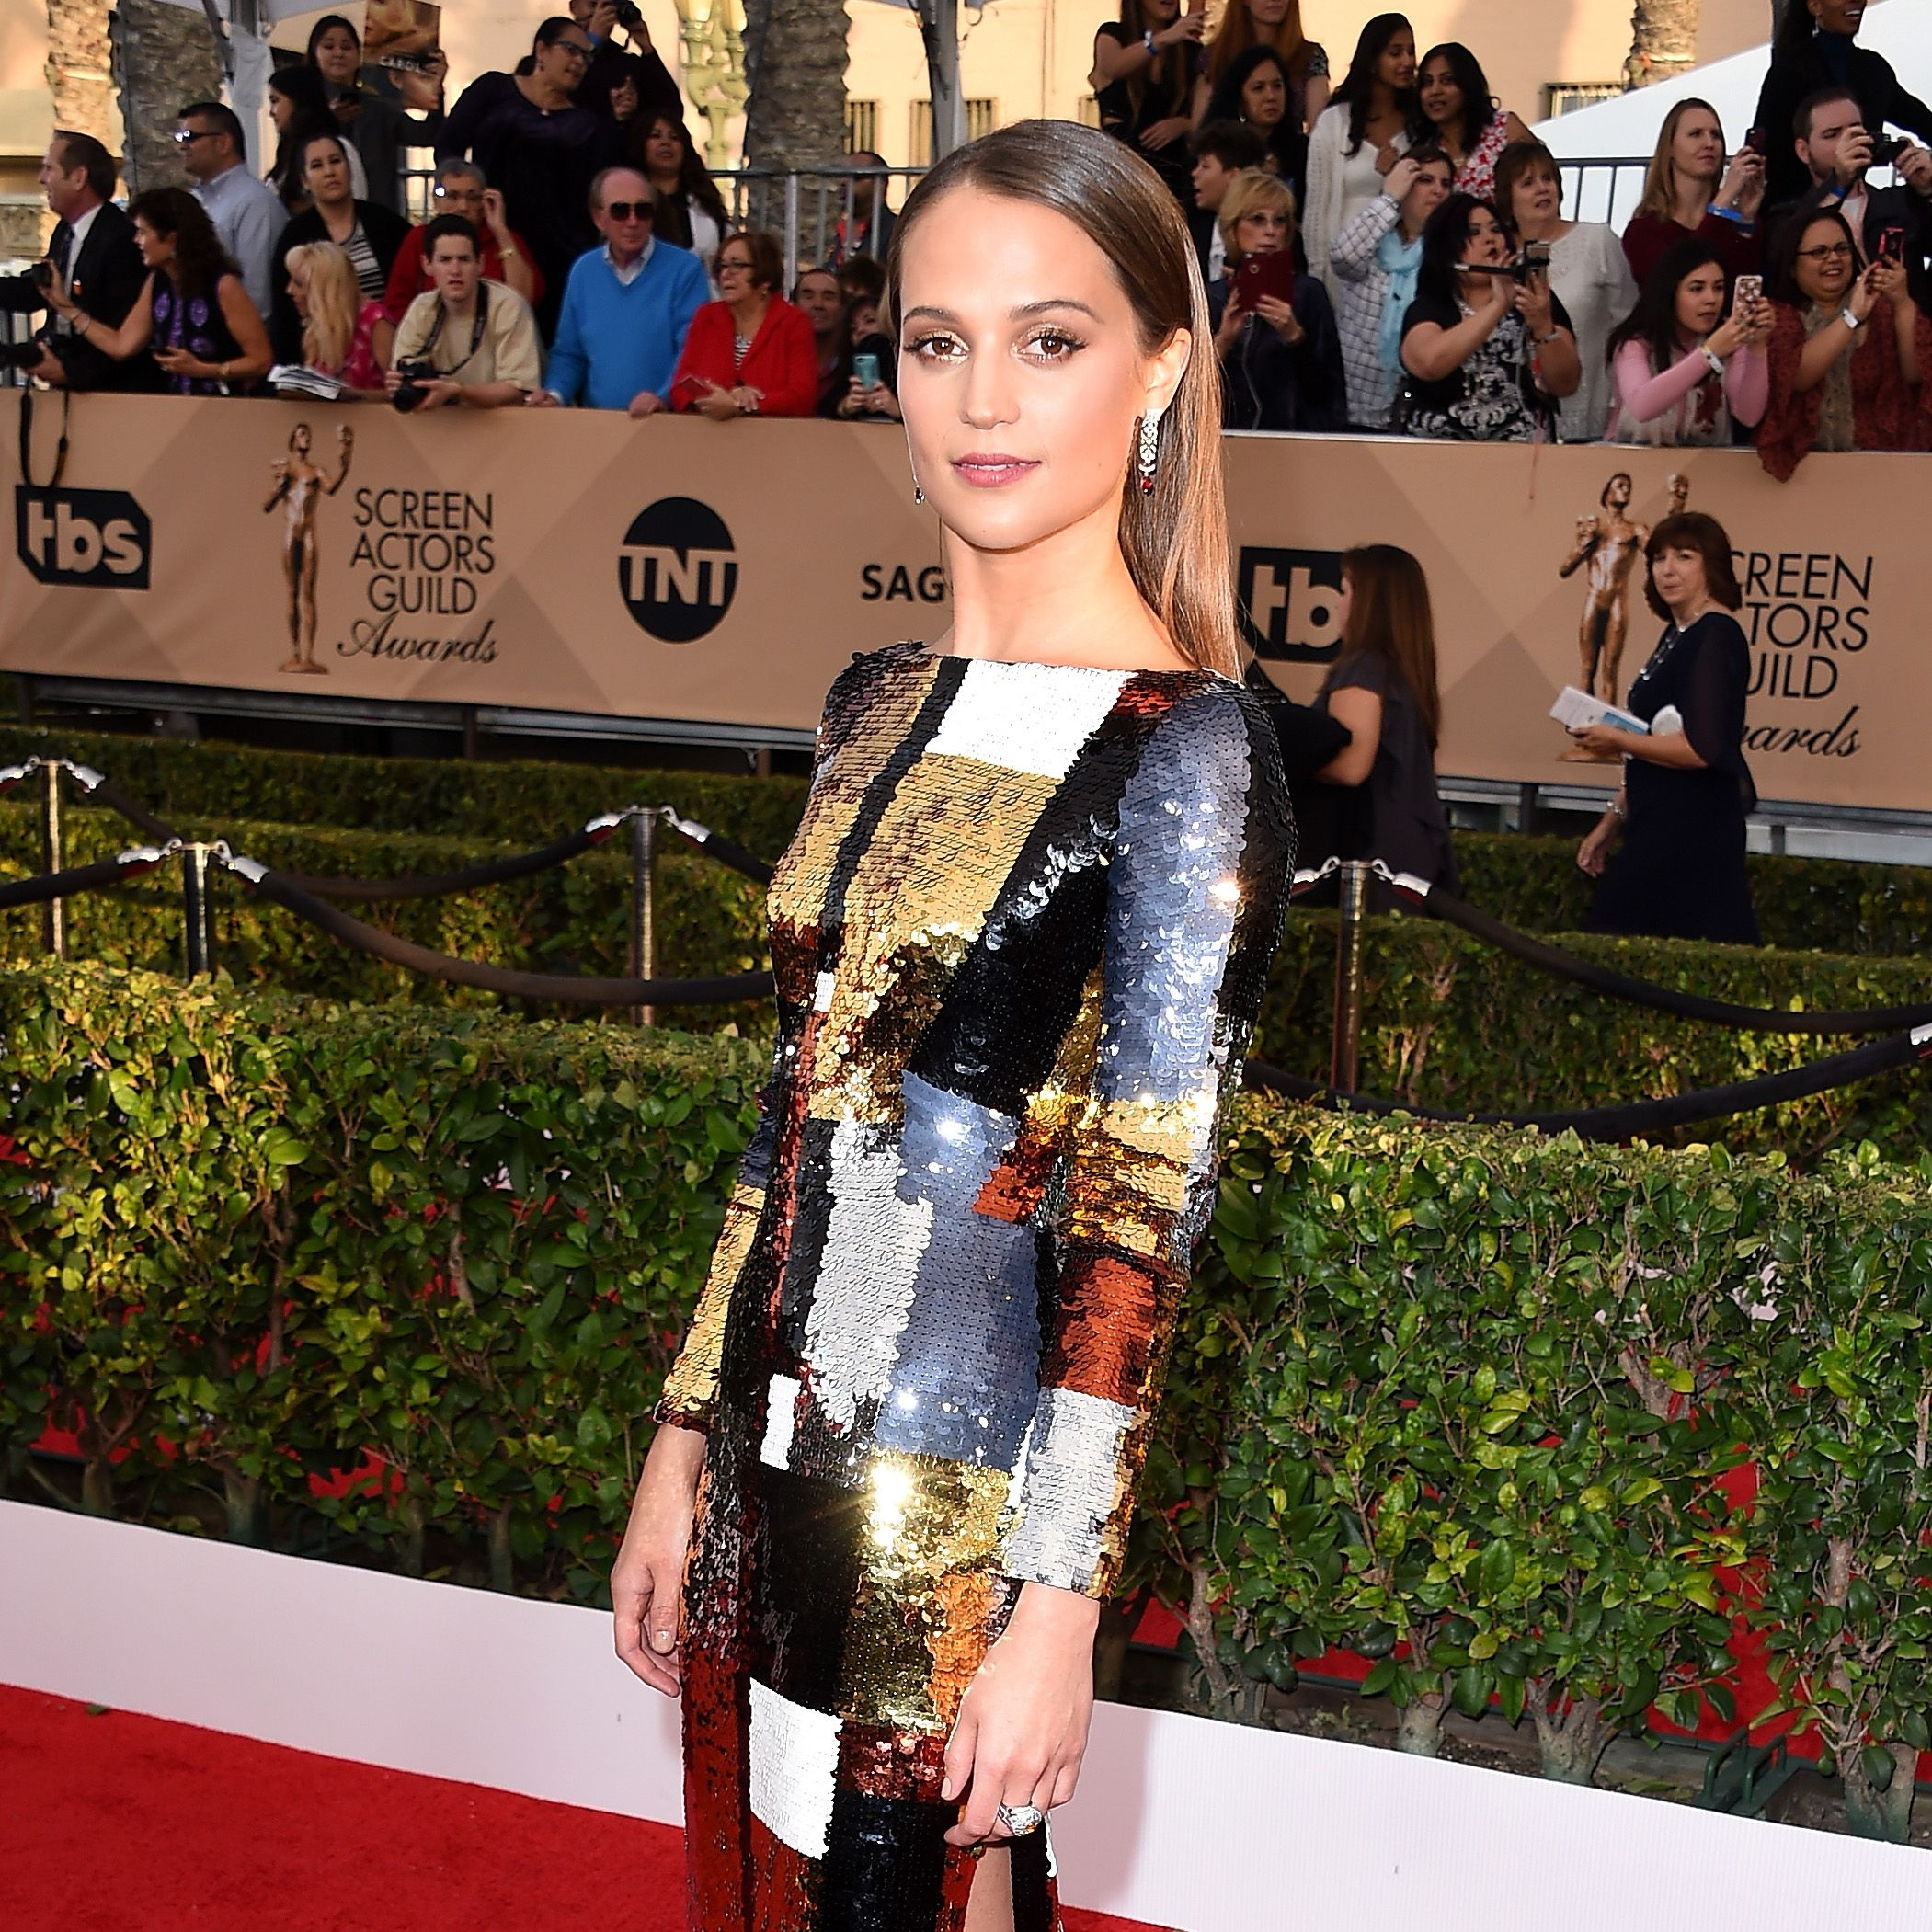 SAG Awards 2016: red carpet looks